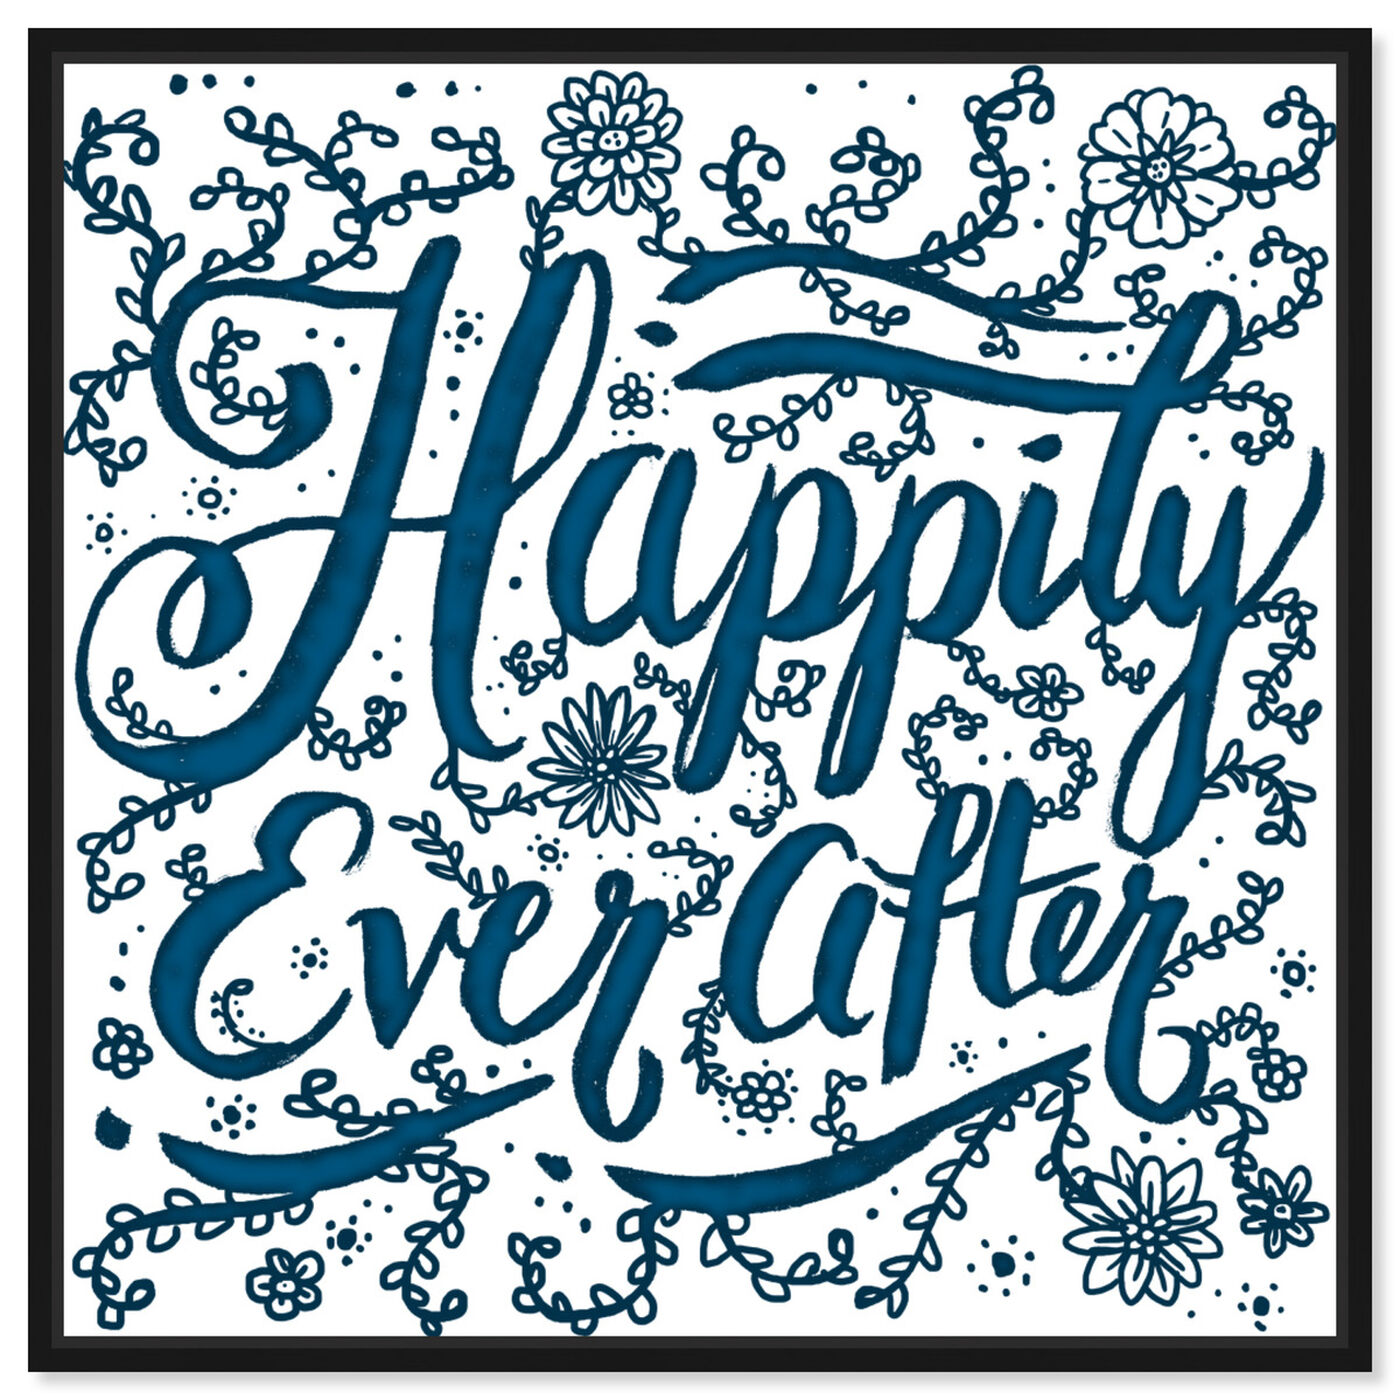 Front view of Happily Ever After featuring typography and quotes and family quotes and sayings art.